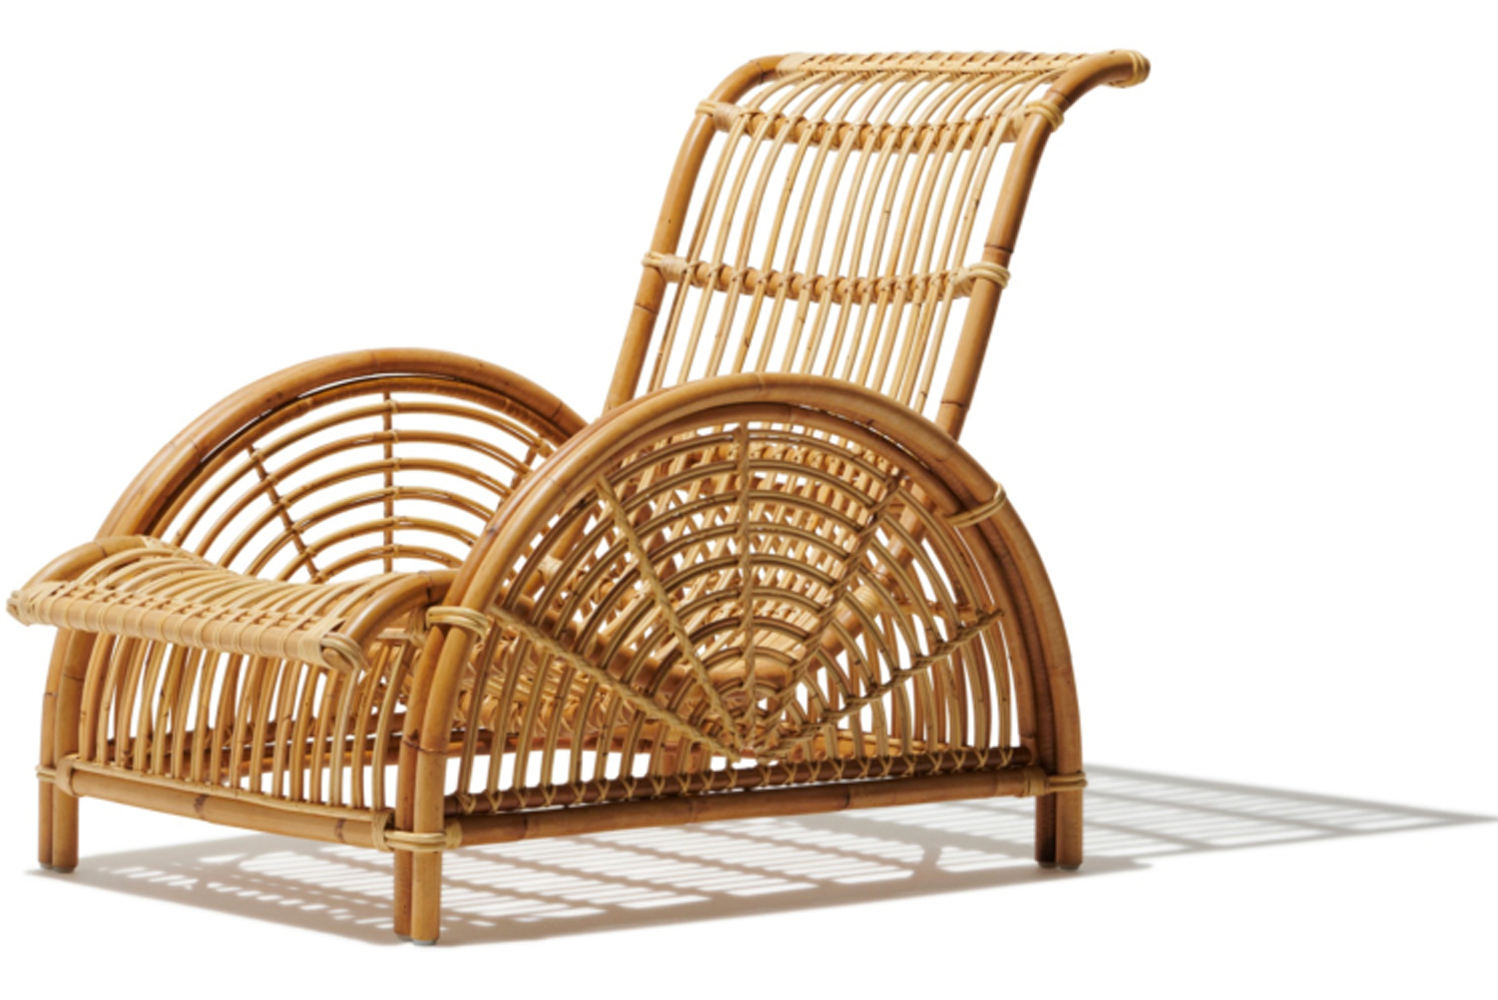 The collection consists of complementary pieces like the Monet wicker chair and Marseilles bench.